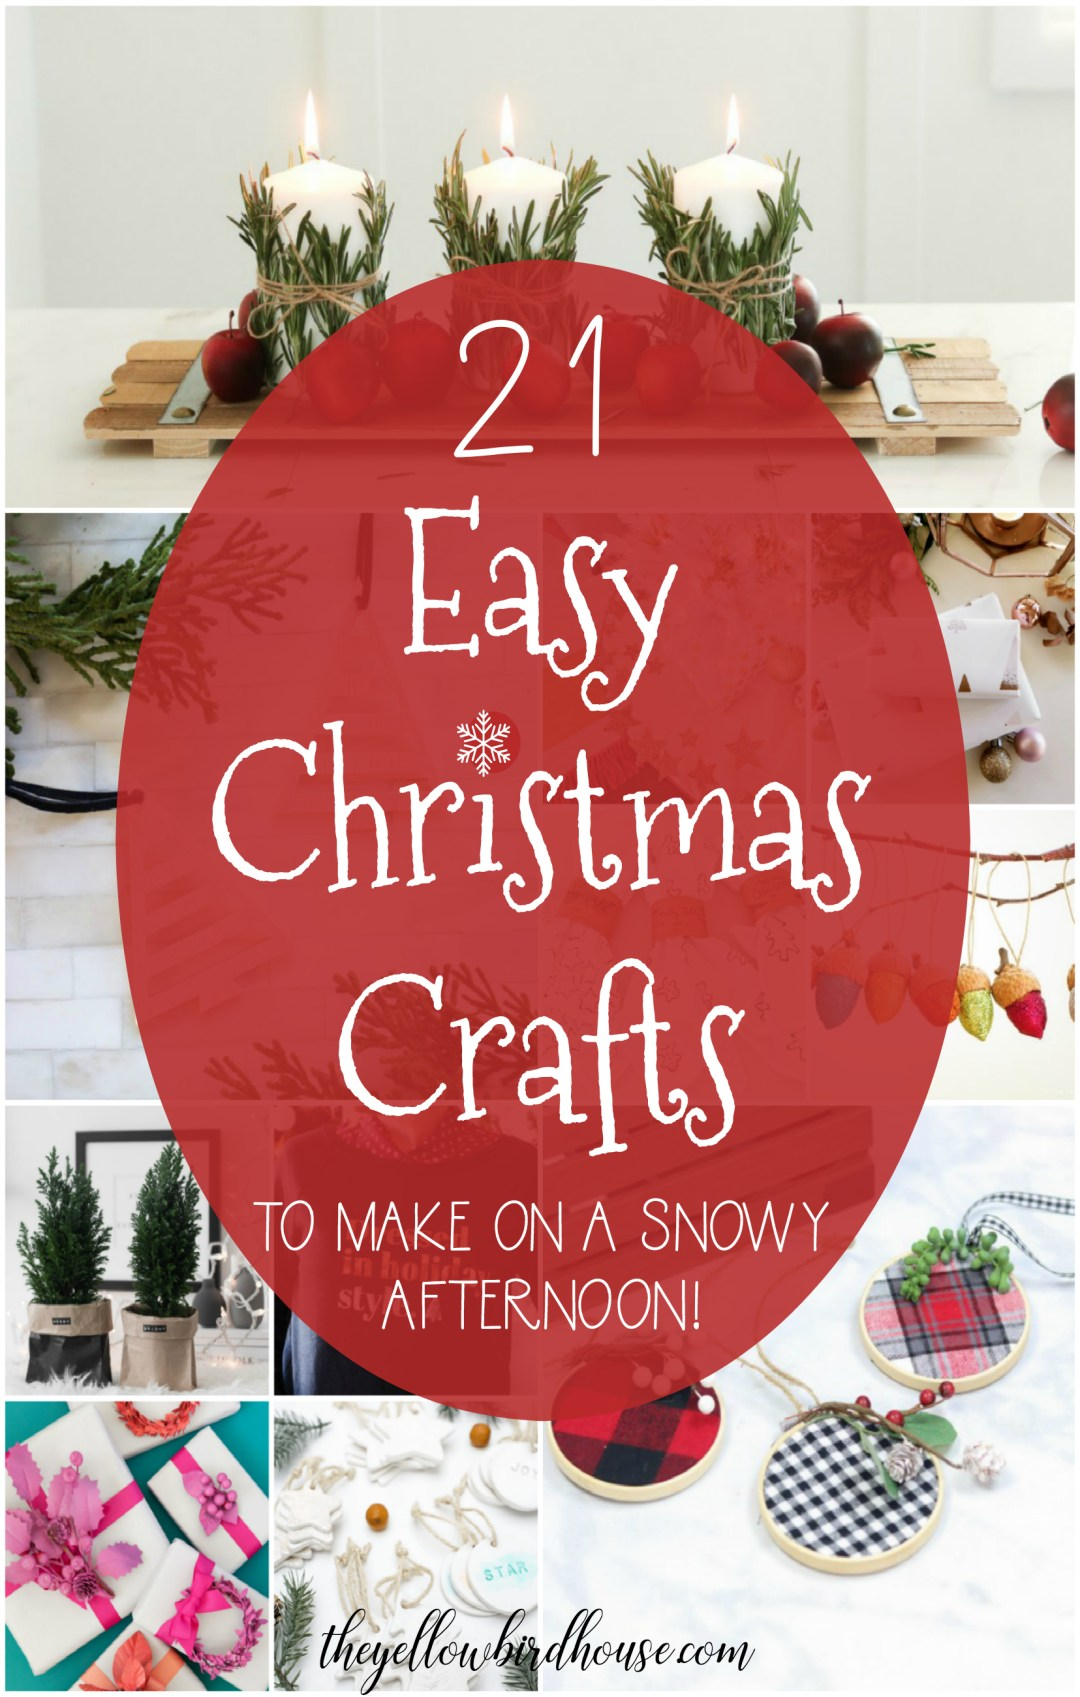 Choose one of these super sweet and easy Christmas crafts to make on a snowy afternoon! DIY Christmas ornaments, decor and gift ideas. Fun DIY ideas to help you create a gorgeous homemade Christmas.